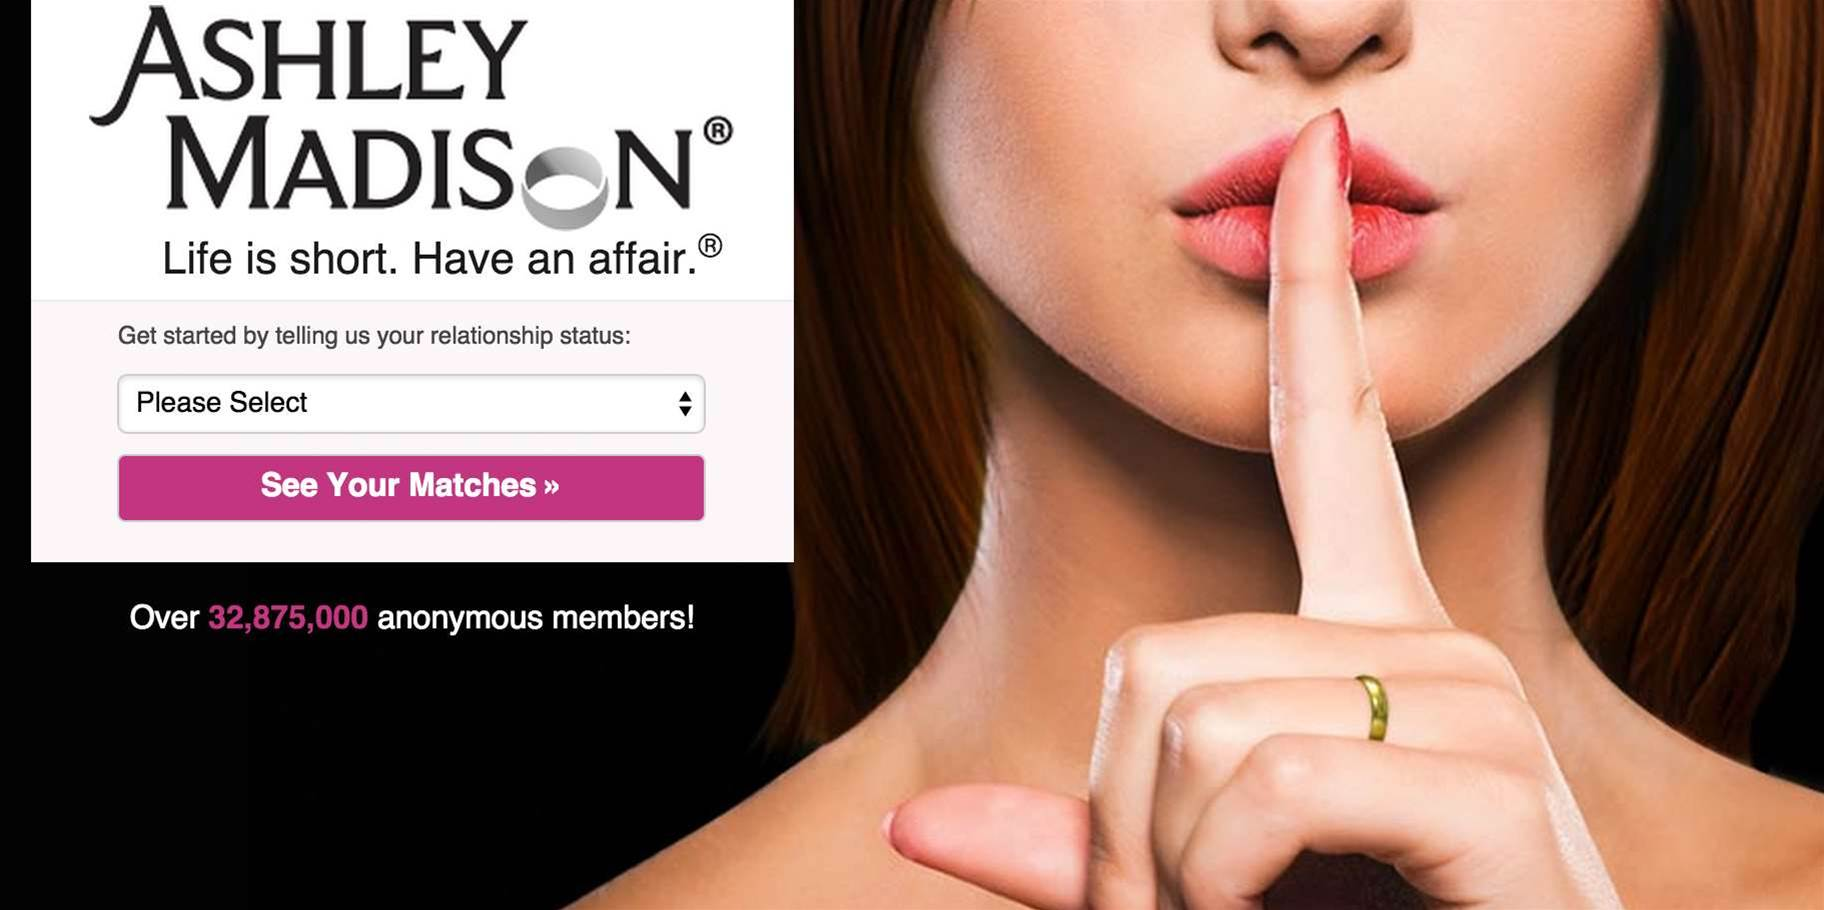 OAIC slams Ashley Madison's dodgy security